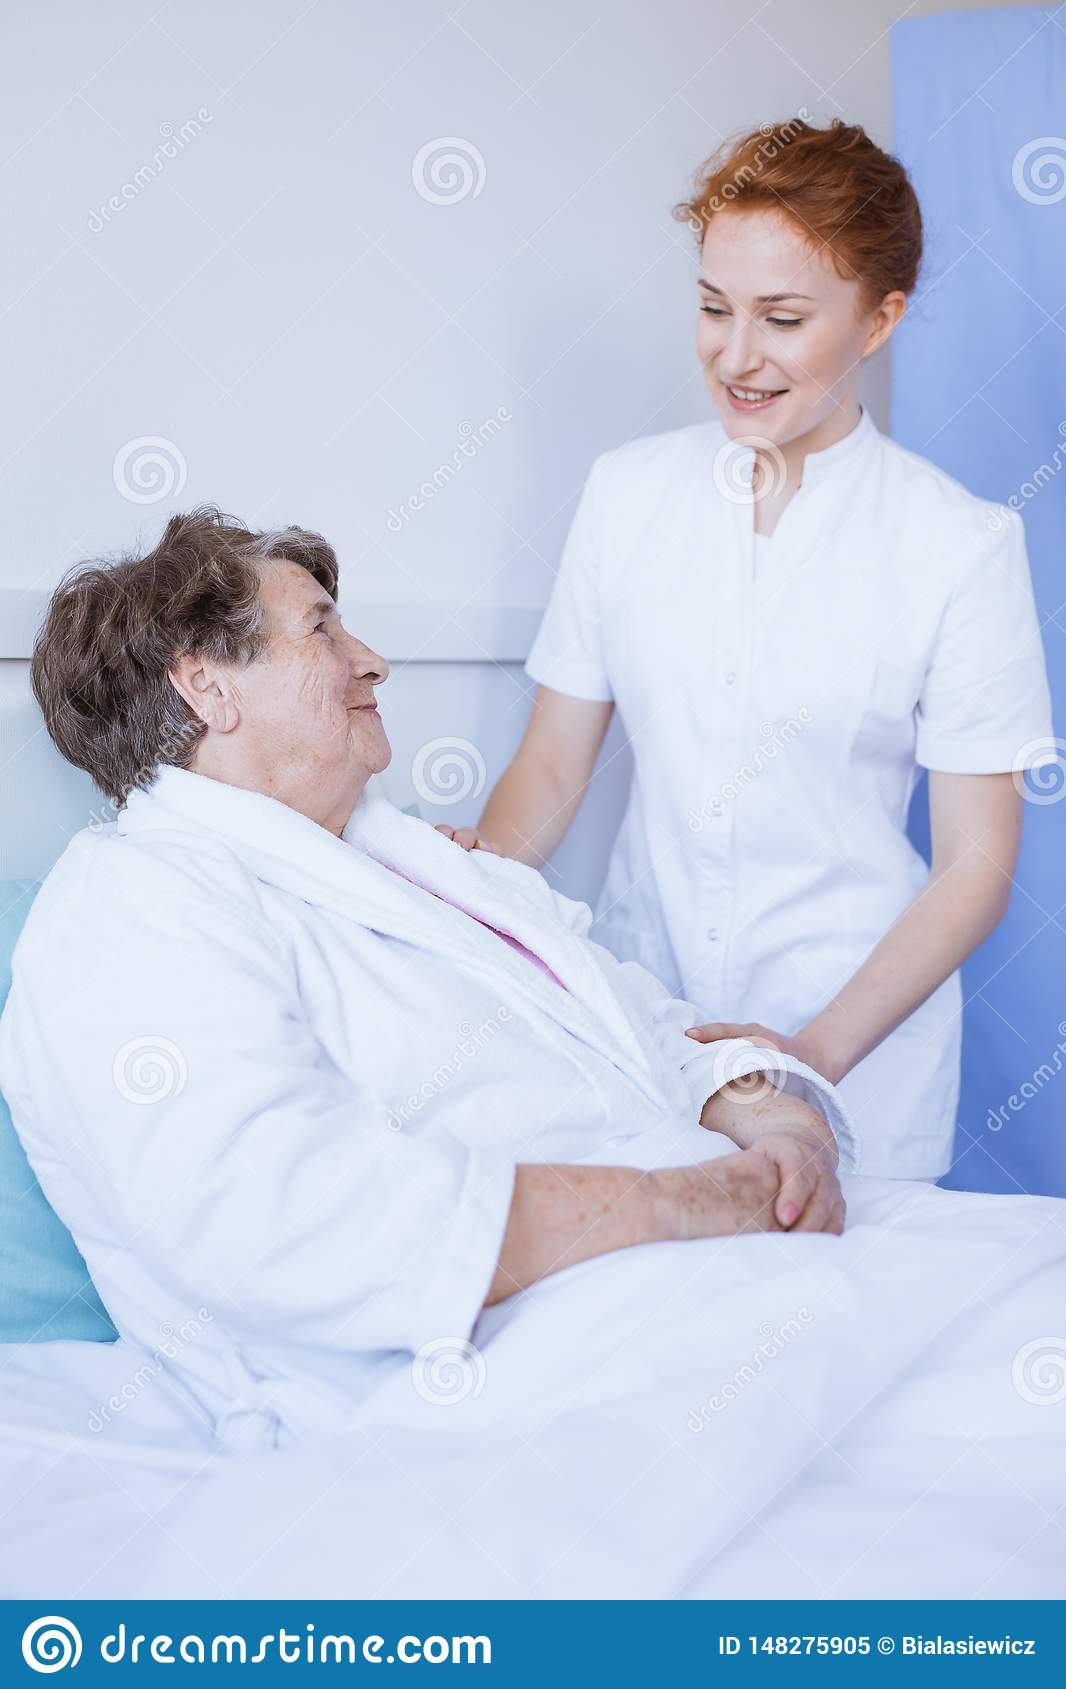 Senior woman lying in white hospital bed with young helpful nurse holding her hand